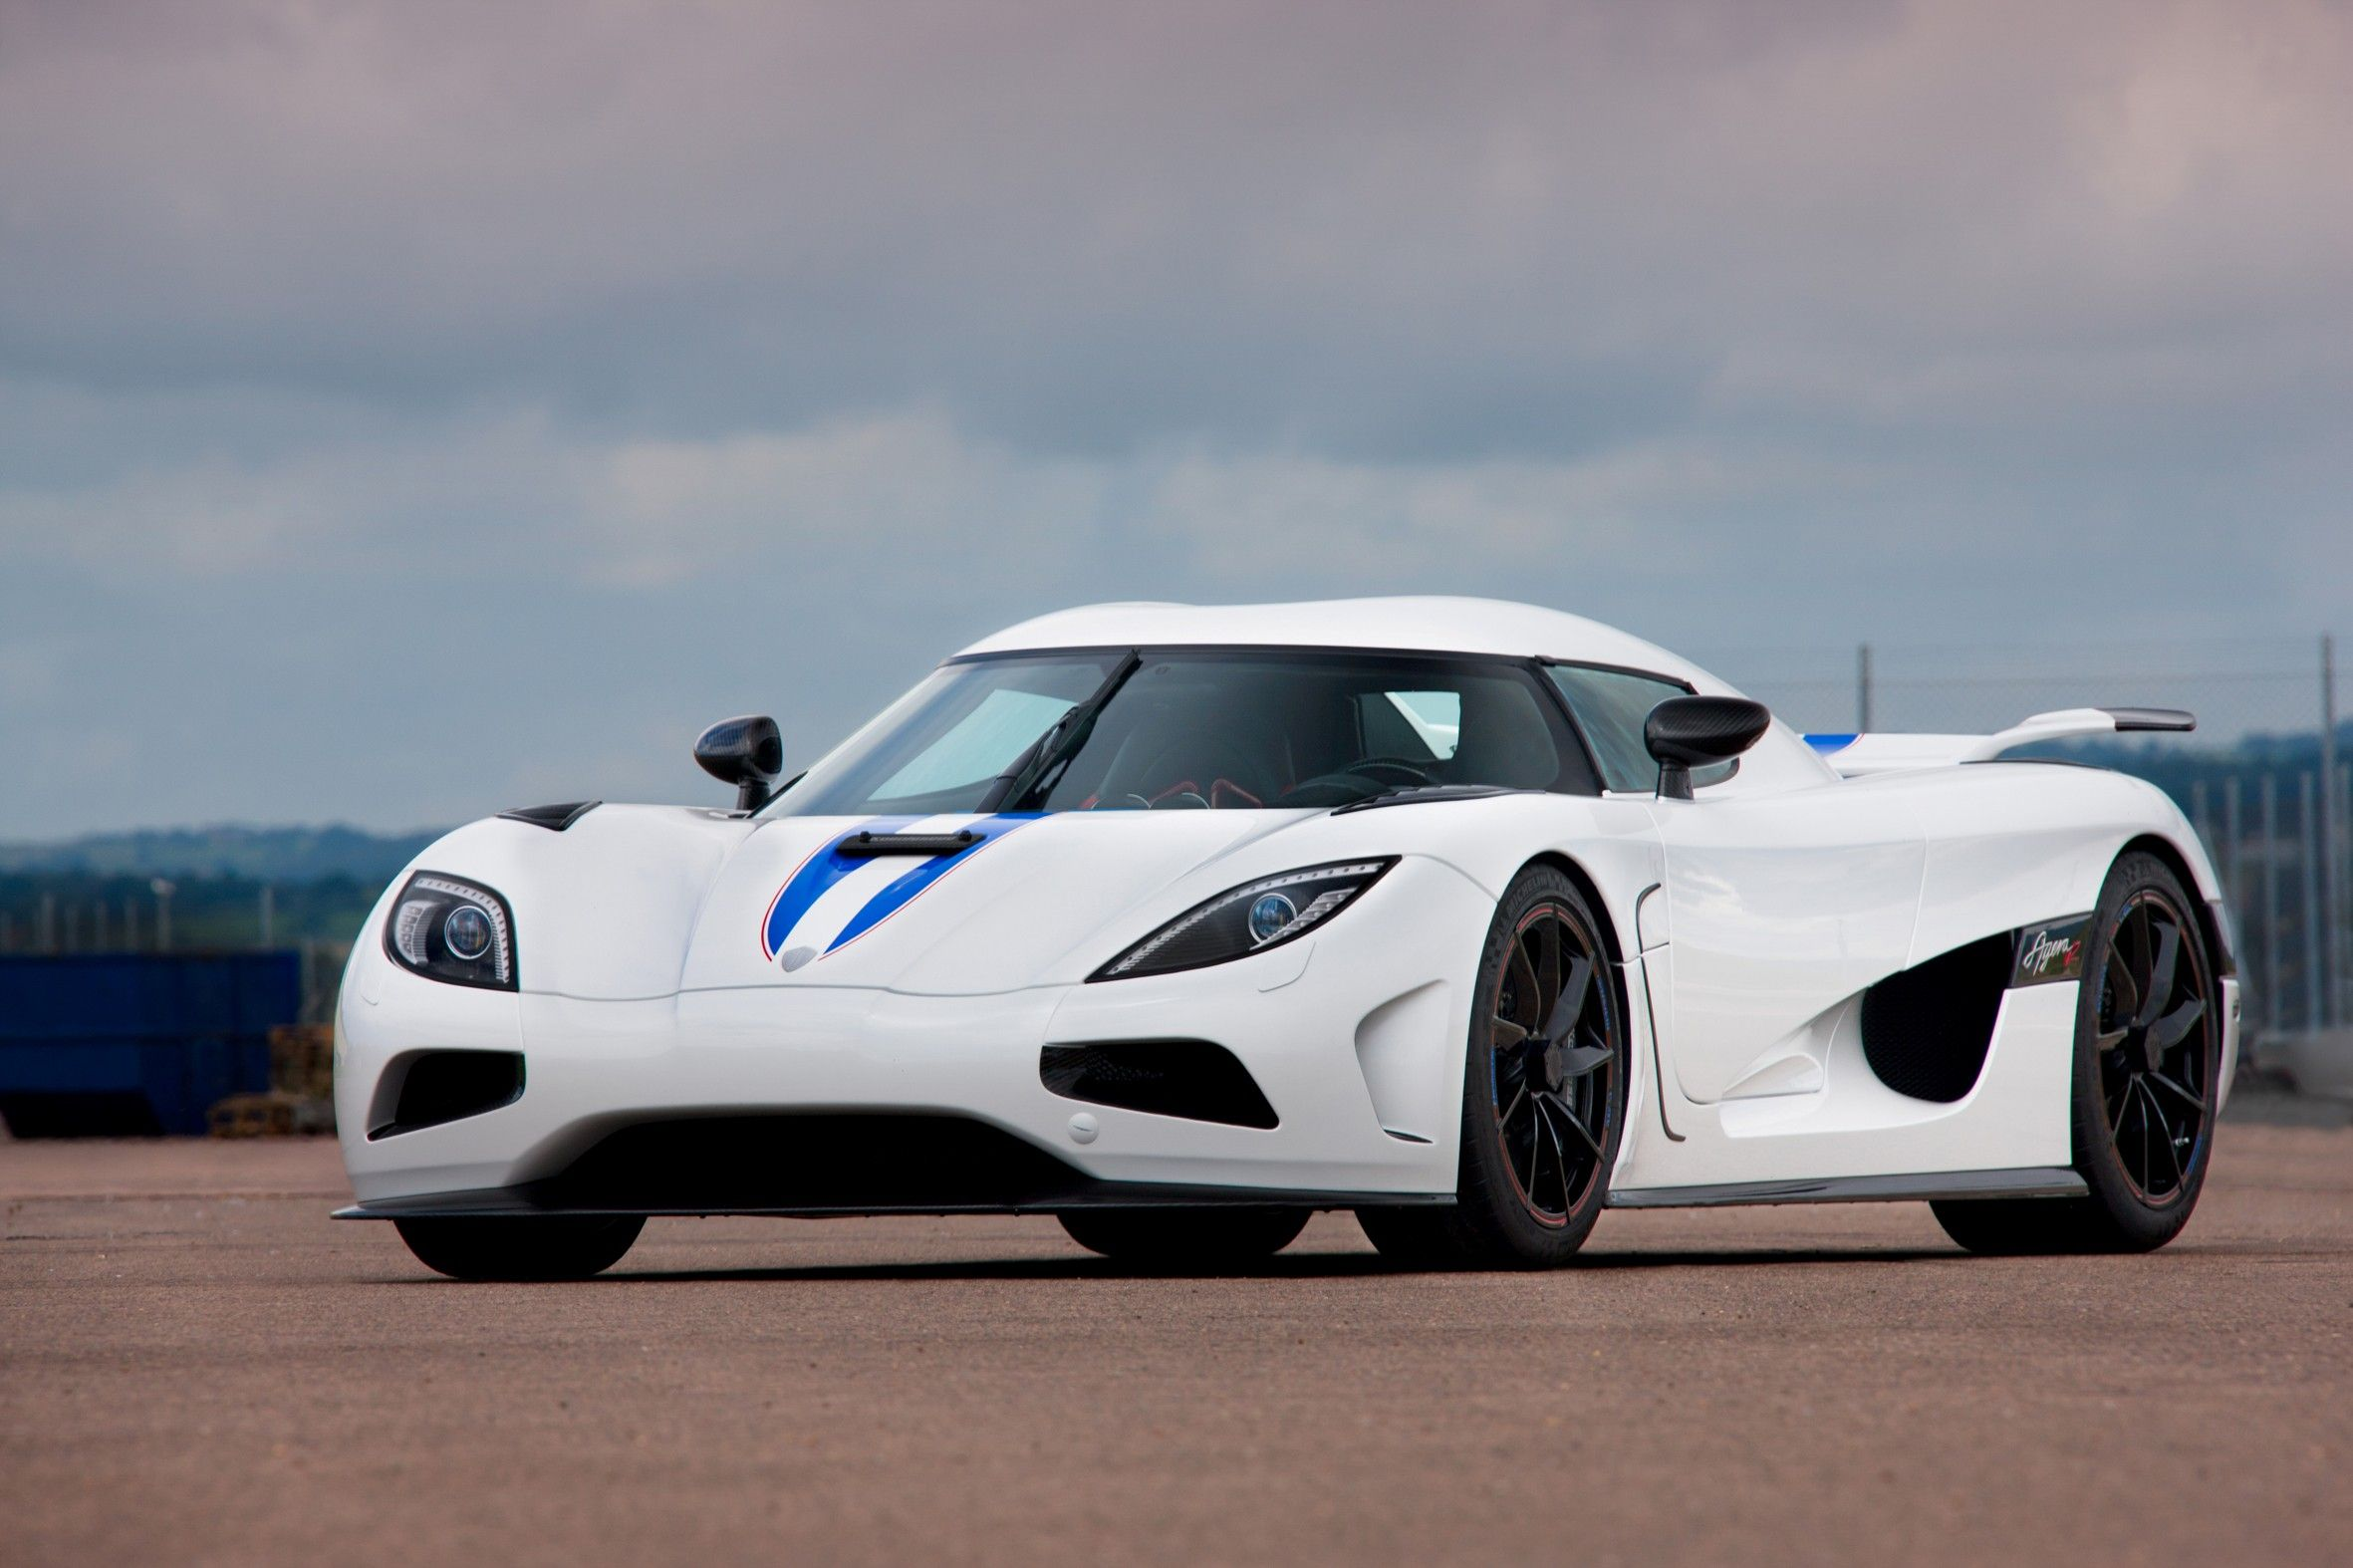 Manhattan Motorcars Signed As Dealer For Koenigsegg Supercars With Images Koenigsegg Super Cars Fast Cars